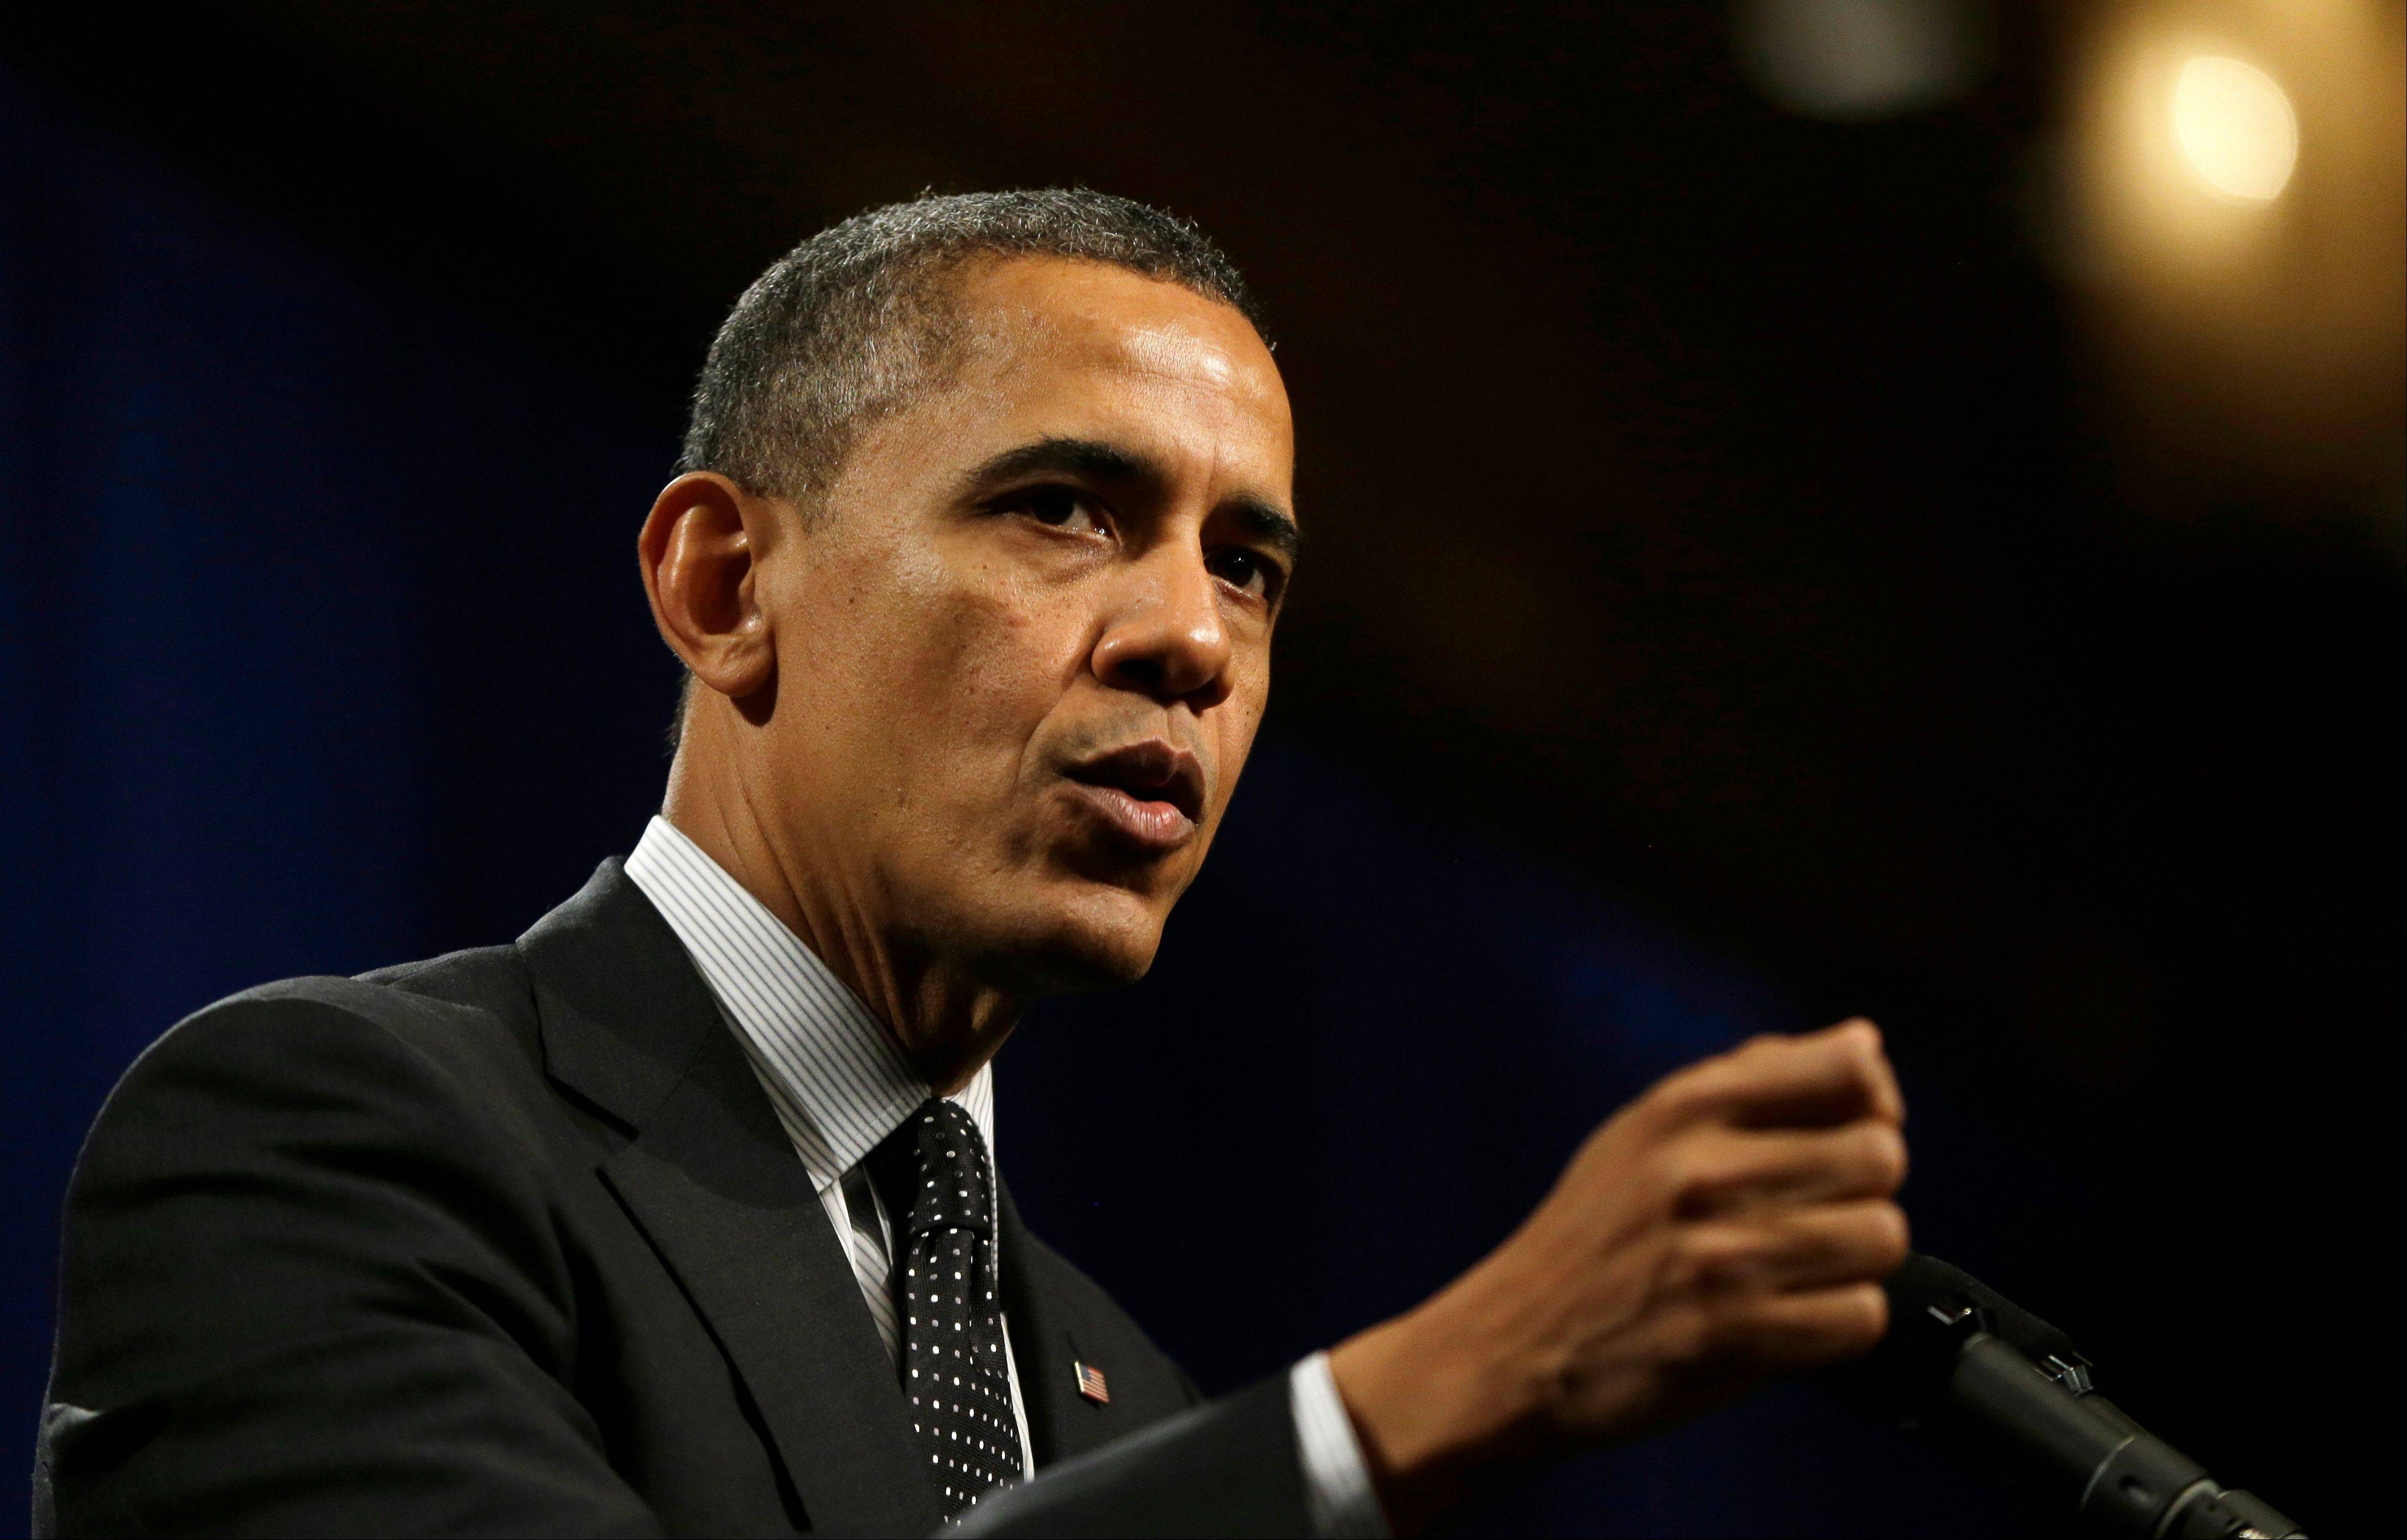 President Barack Obama will be in Chicago on Friday to address gun violence.